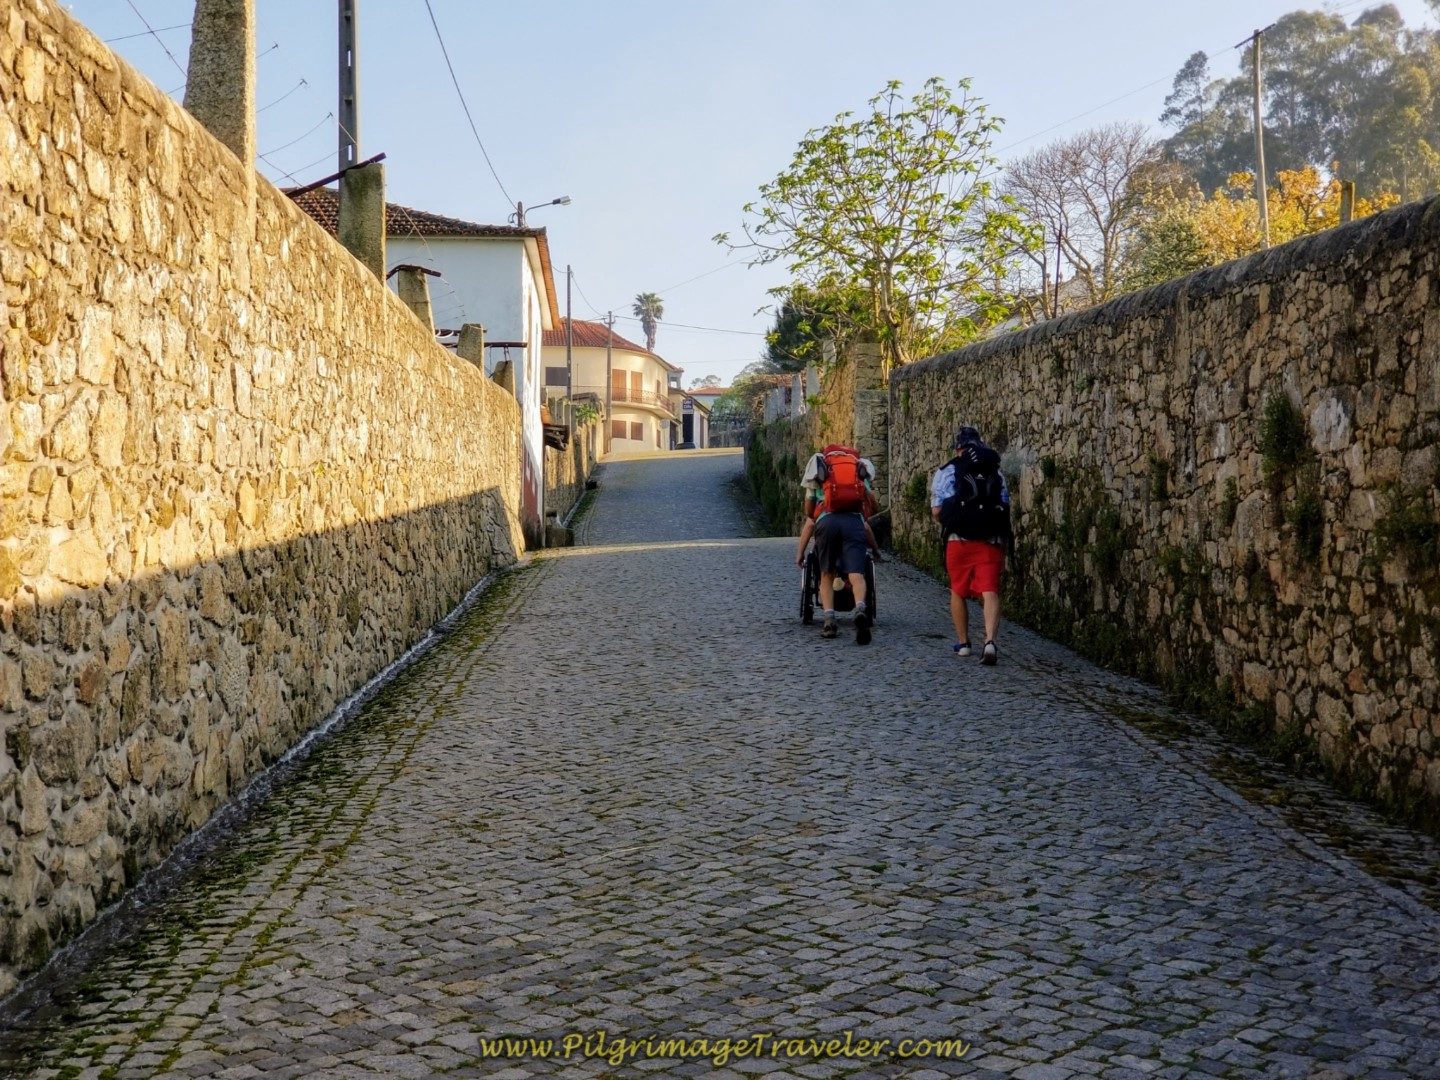 Rich Pushing Magdalena Up the Cobblestone Rua Dom Zameiro, Ponte do Ave, Portugal on the Central Route of the Camino Portugués